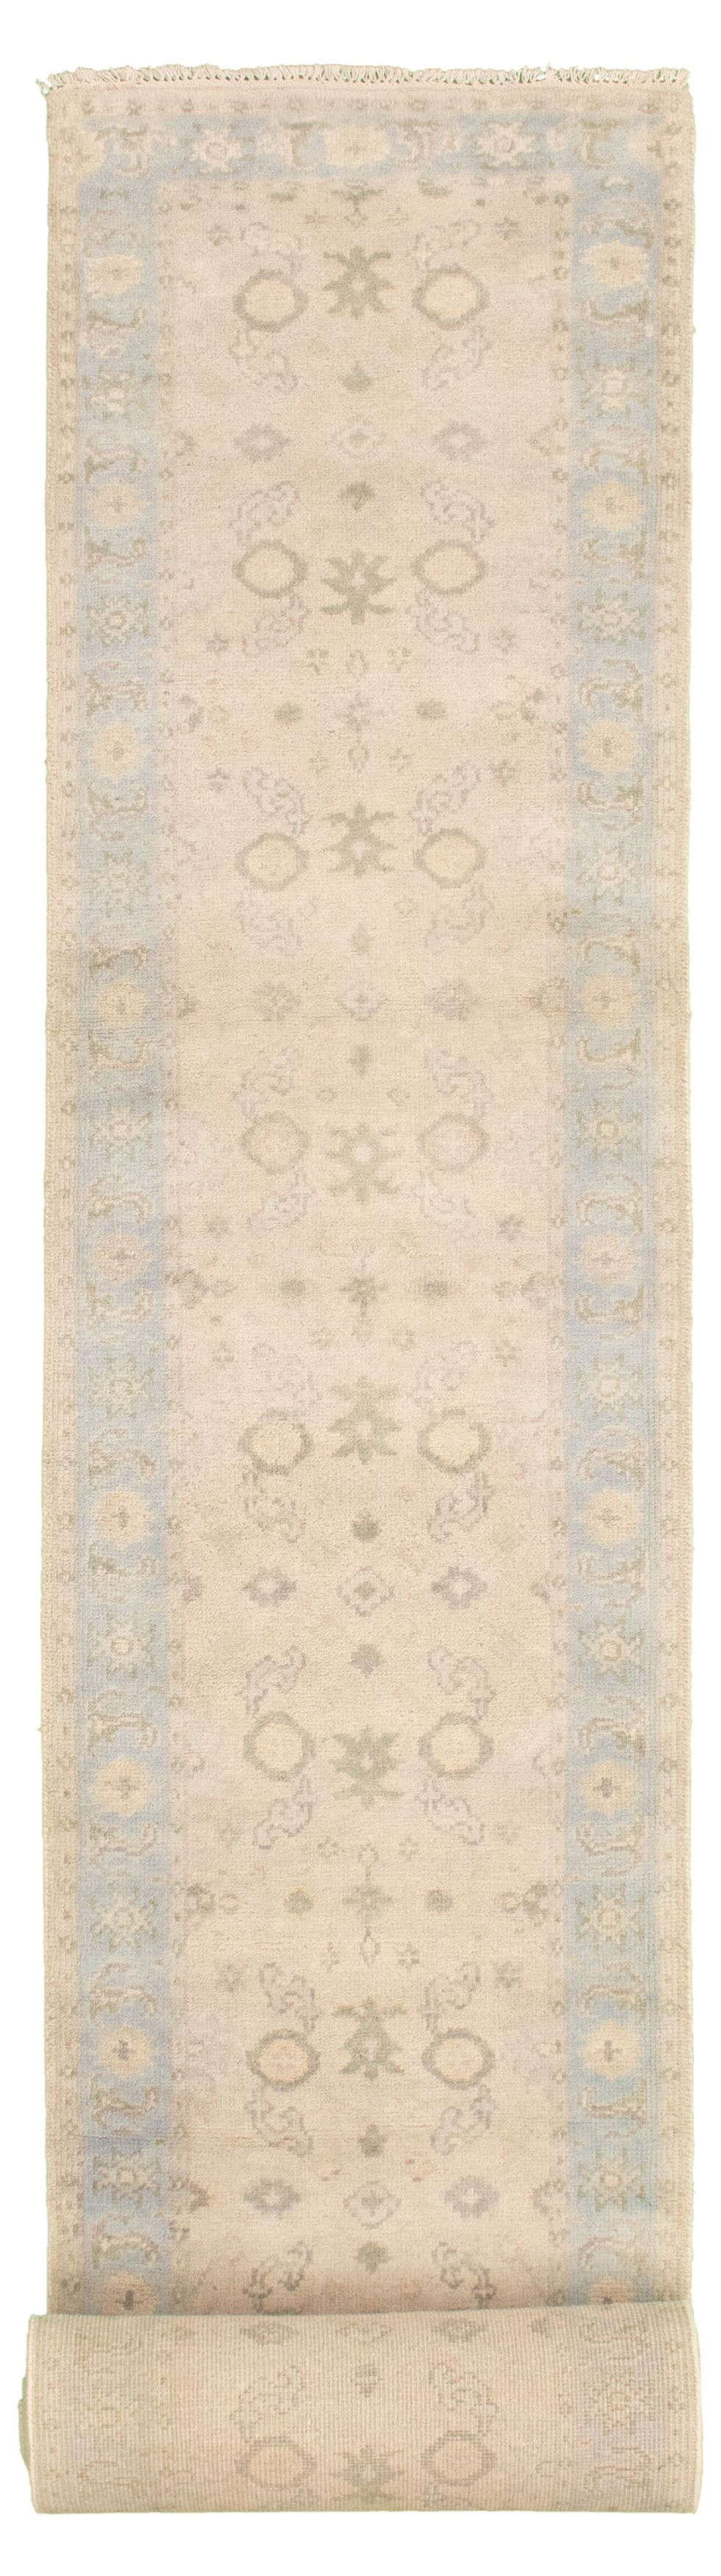 """Hand-knotted Royal Ushak Beige Wool Rug 2'7"""" x 19'7"""" Size: 2'7"""" x 19'7"""""""